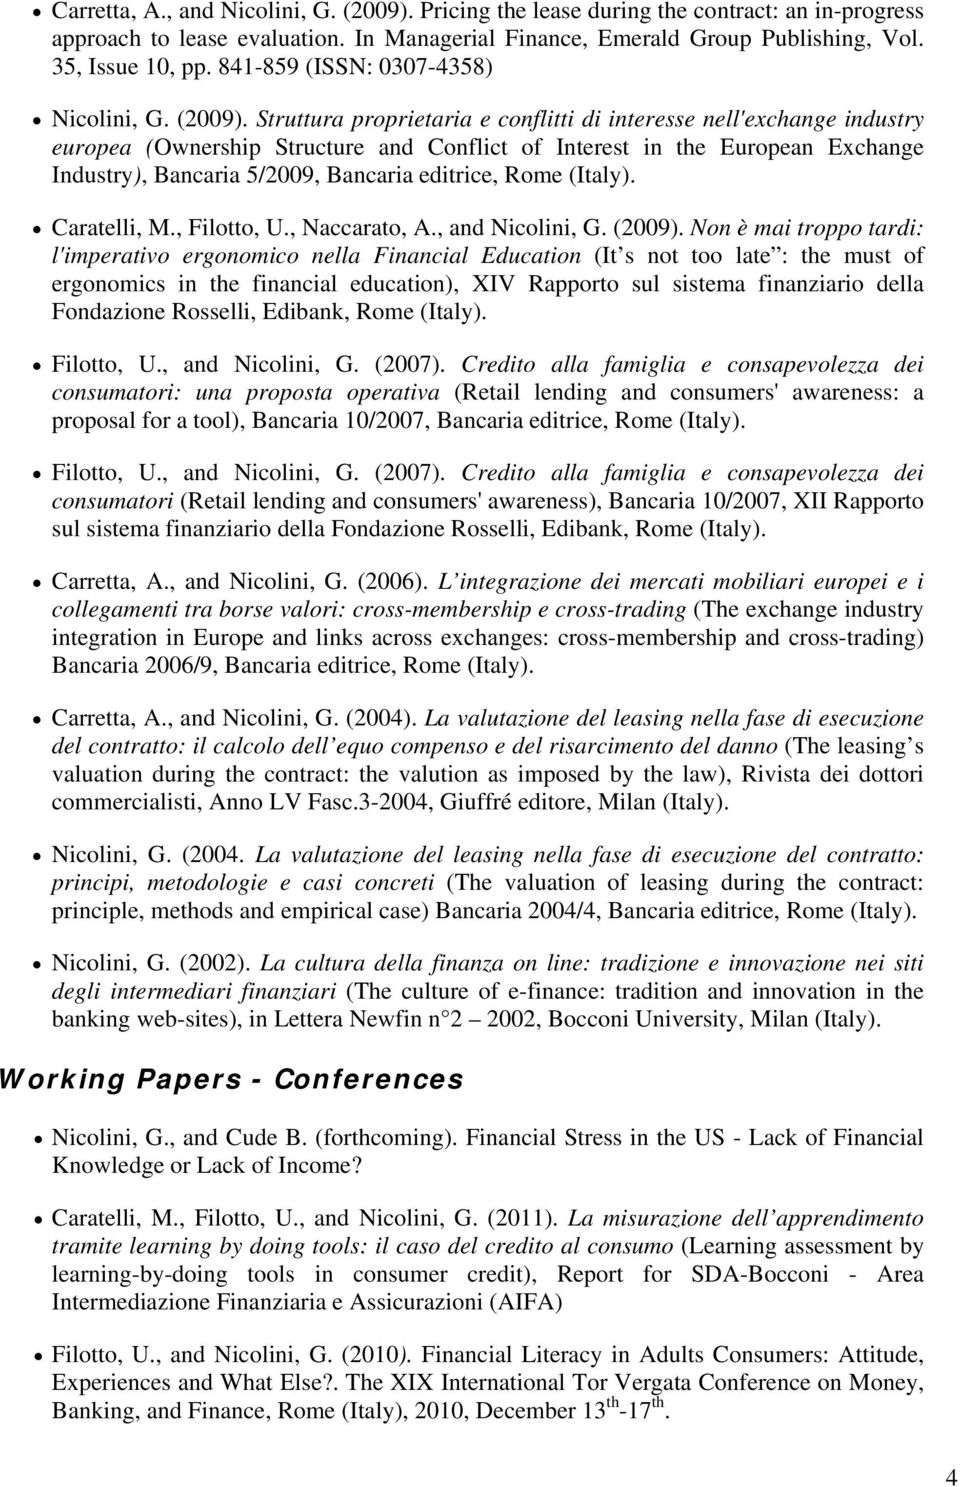 Struttura proprietaria e conflitti di interesse nell'exchange industry europea (Ownership Structure and Conflict of Interest in the European Exchange Industry), Bancaria 5/2009, Bancaria editrice,